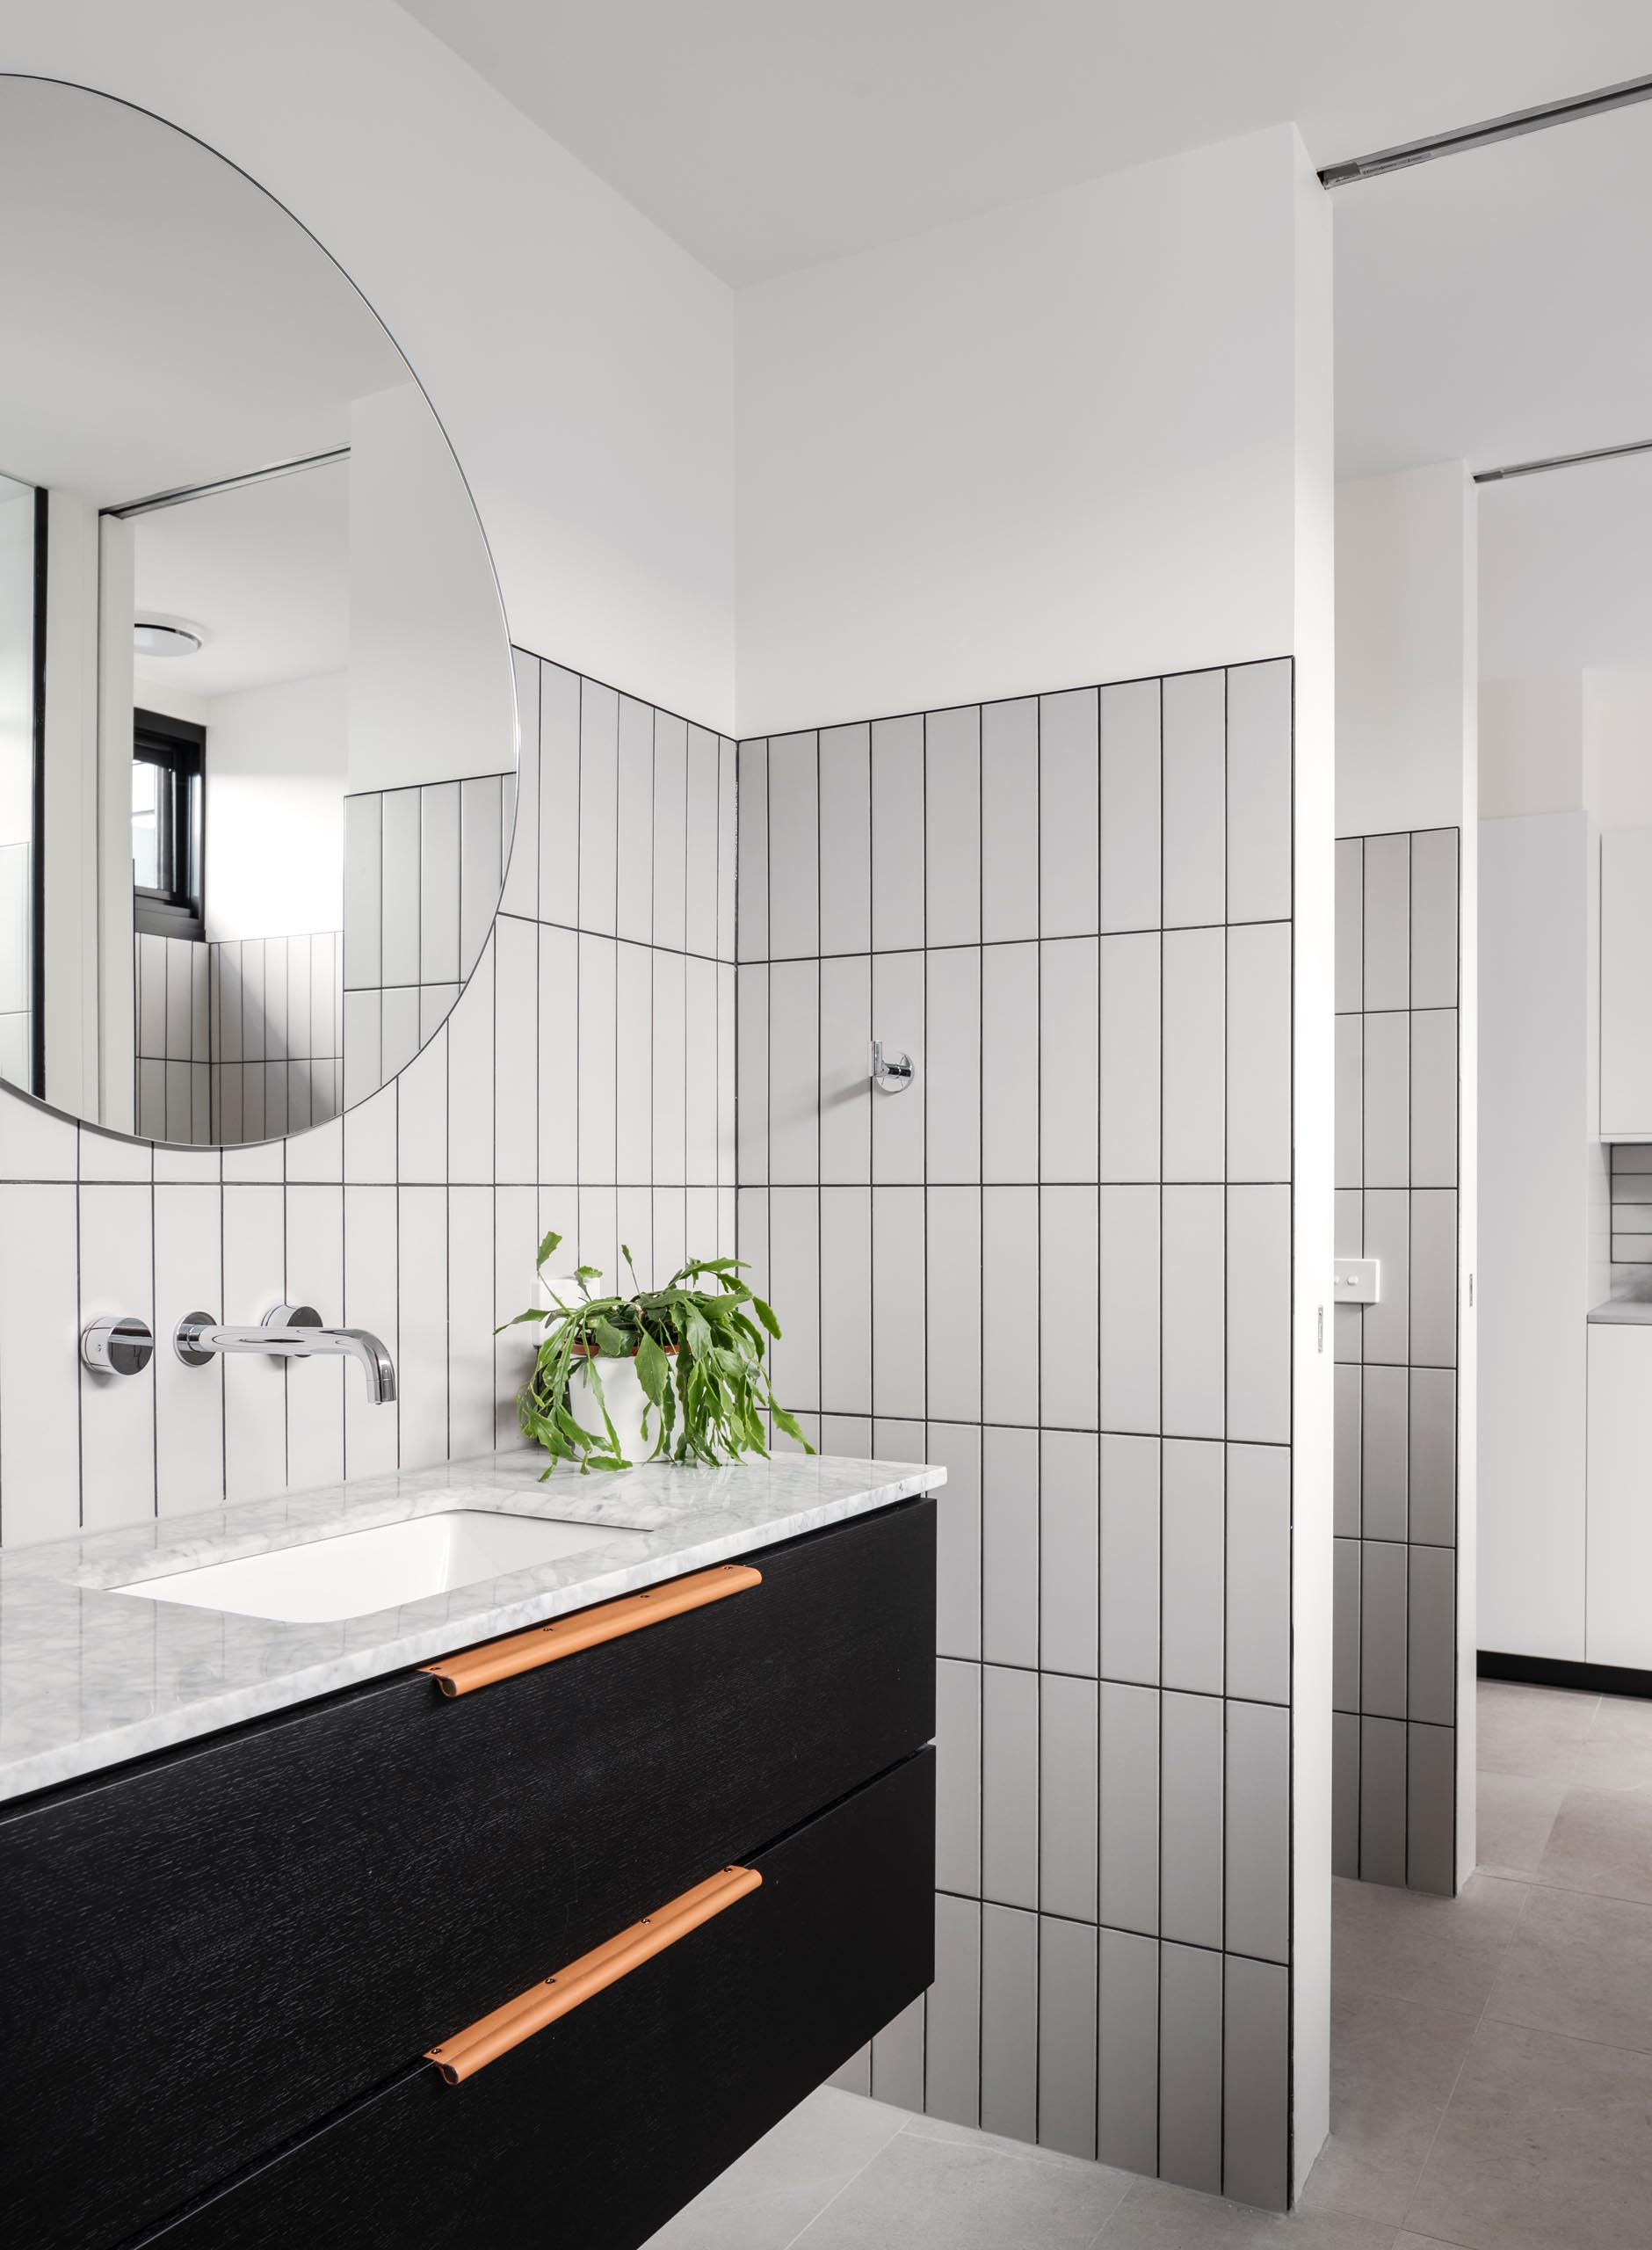 In the bathroom, rectangular light gray tiles with dark grout have been laid in a vertical pattern, while a black vanity sits below a round mirror.